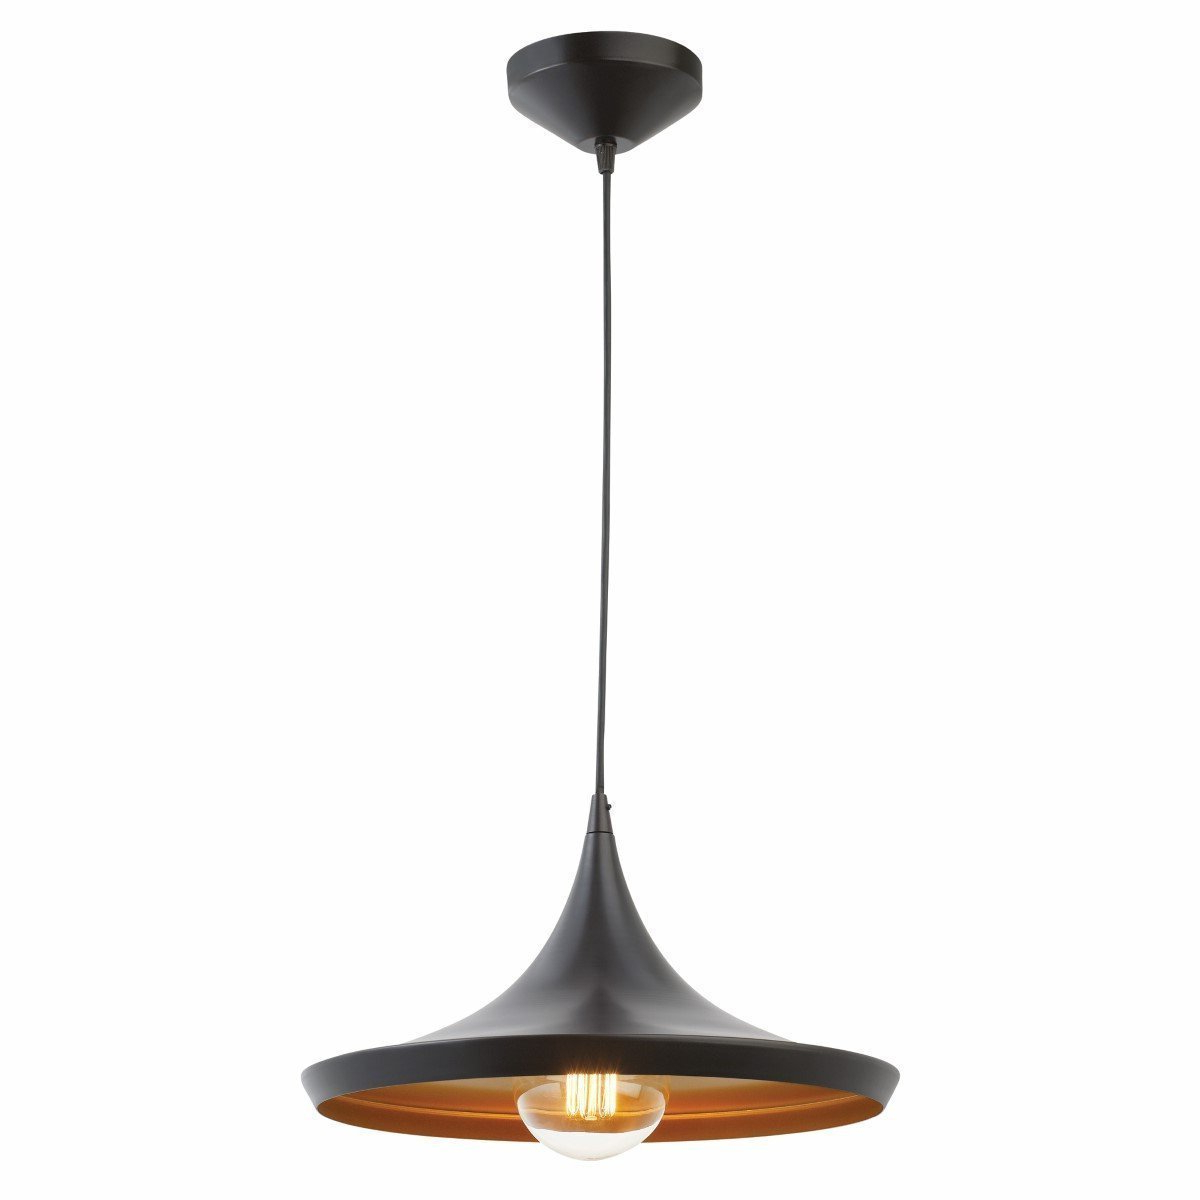 Details About Pendant Light Led Ceiling Lights Lamp Shade Industrial Cafe Lighting Kitchen Bar Within Most Recently Released Akash Industrial Vintage 1 Light Geometric Pendants (View 4 of 20)